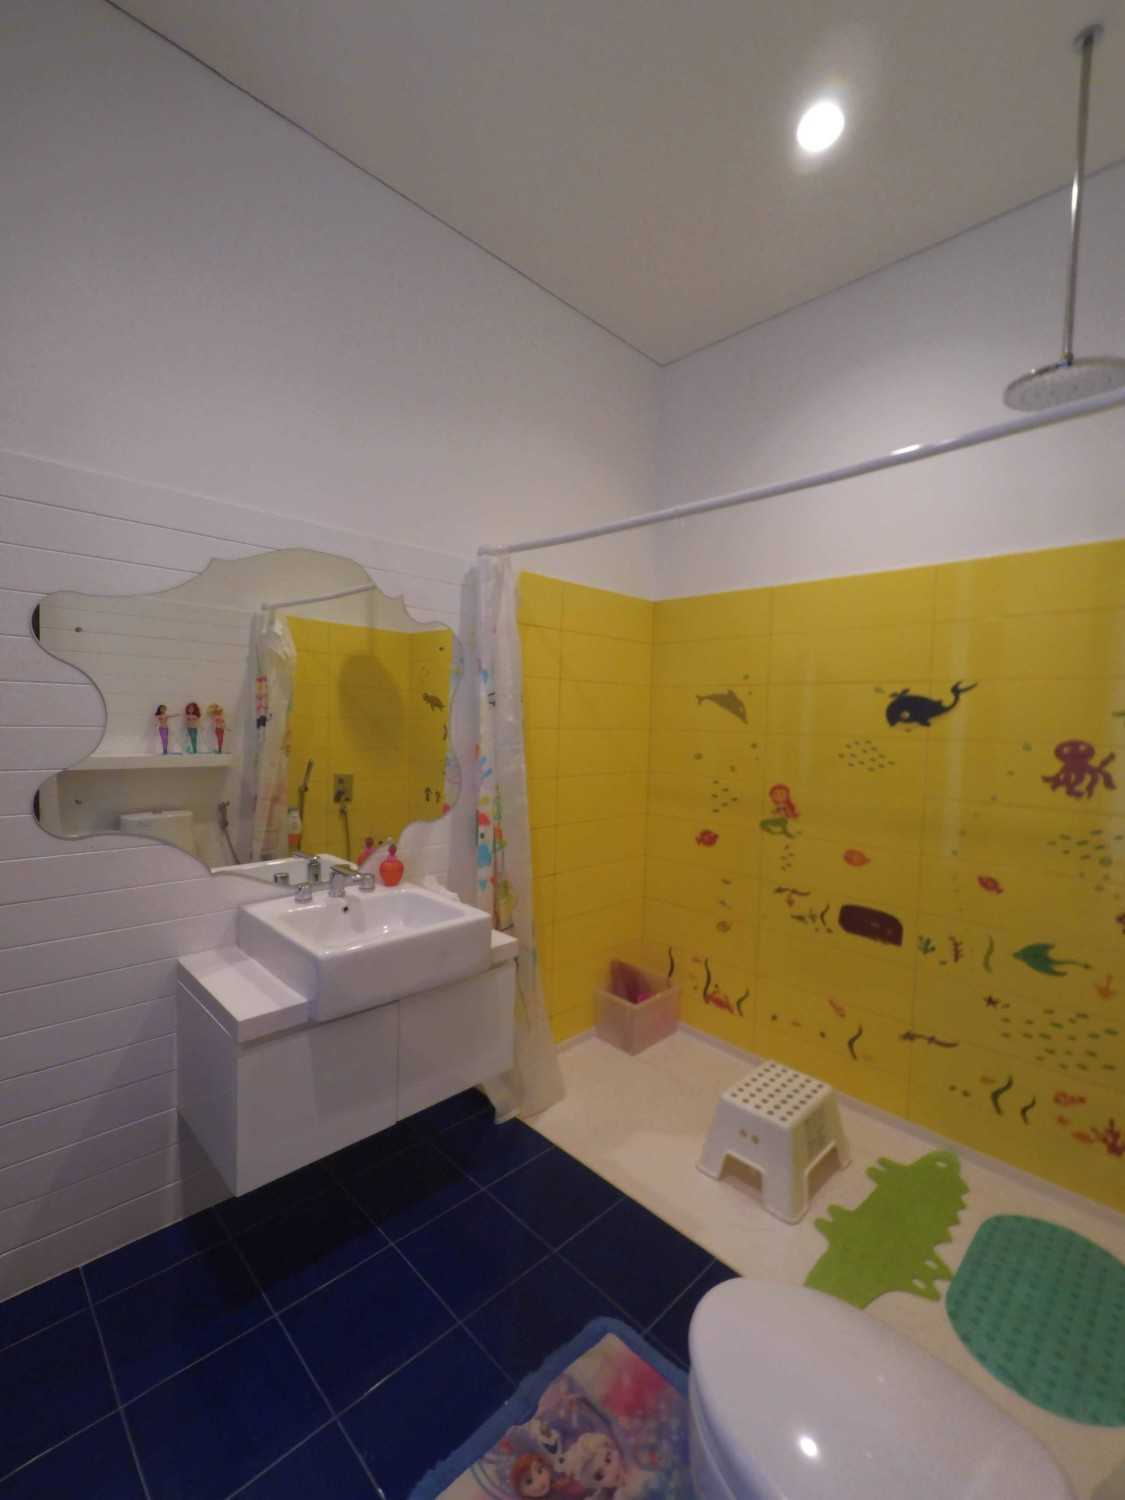 Dezan Studio Interior - Kids Room Pondok Indah Pondok Indah Kids Bathroom  19415